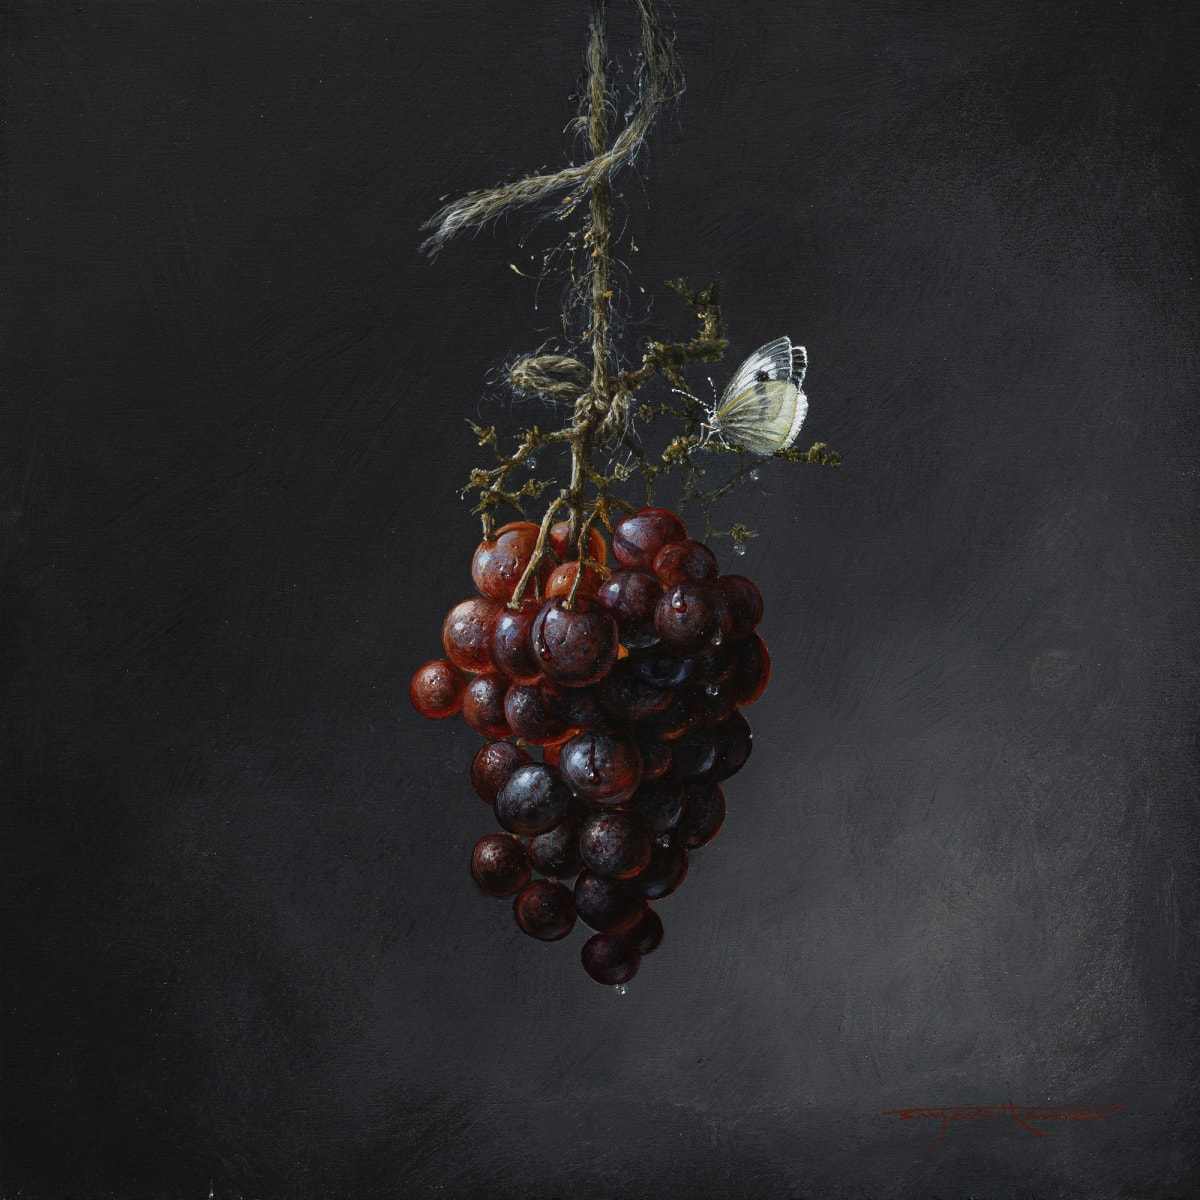 Bryan Hanlon HANGING GRAPES Acrylic on board 12 x 12 in. 30.48 x 30.48 cm